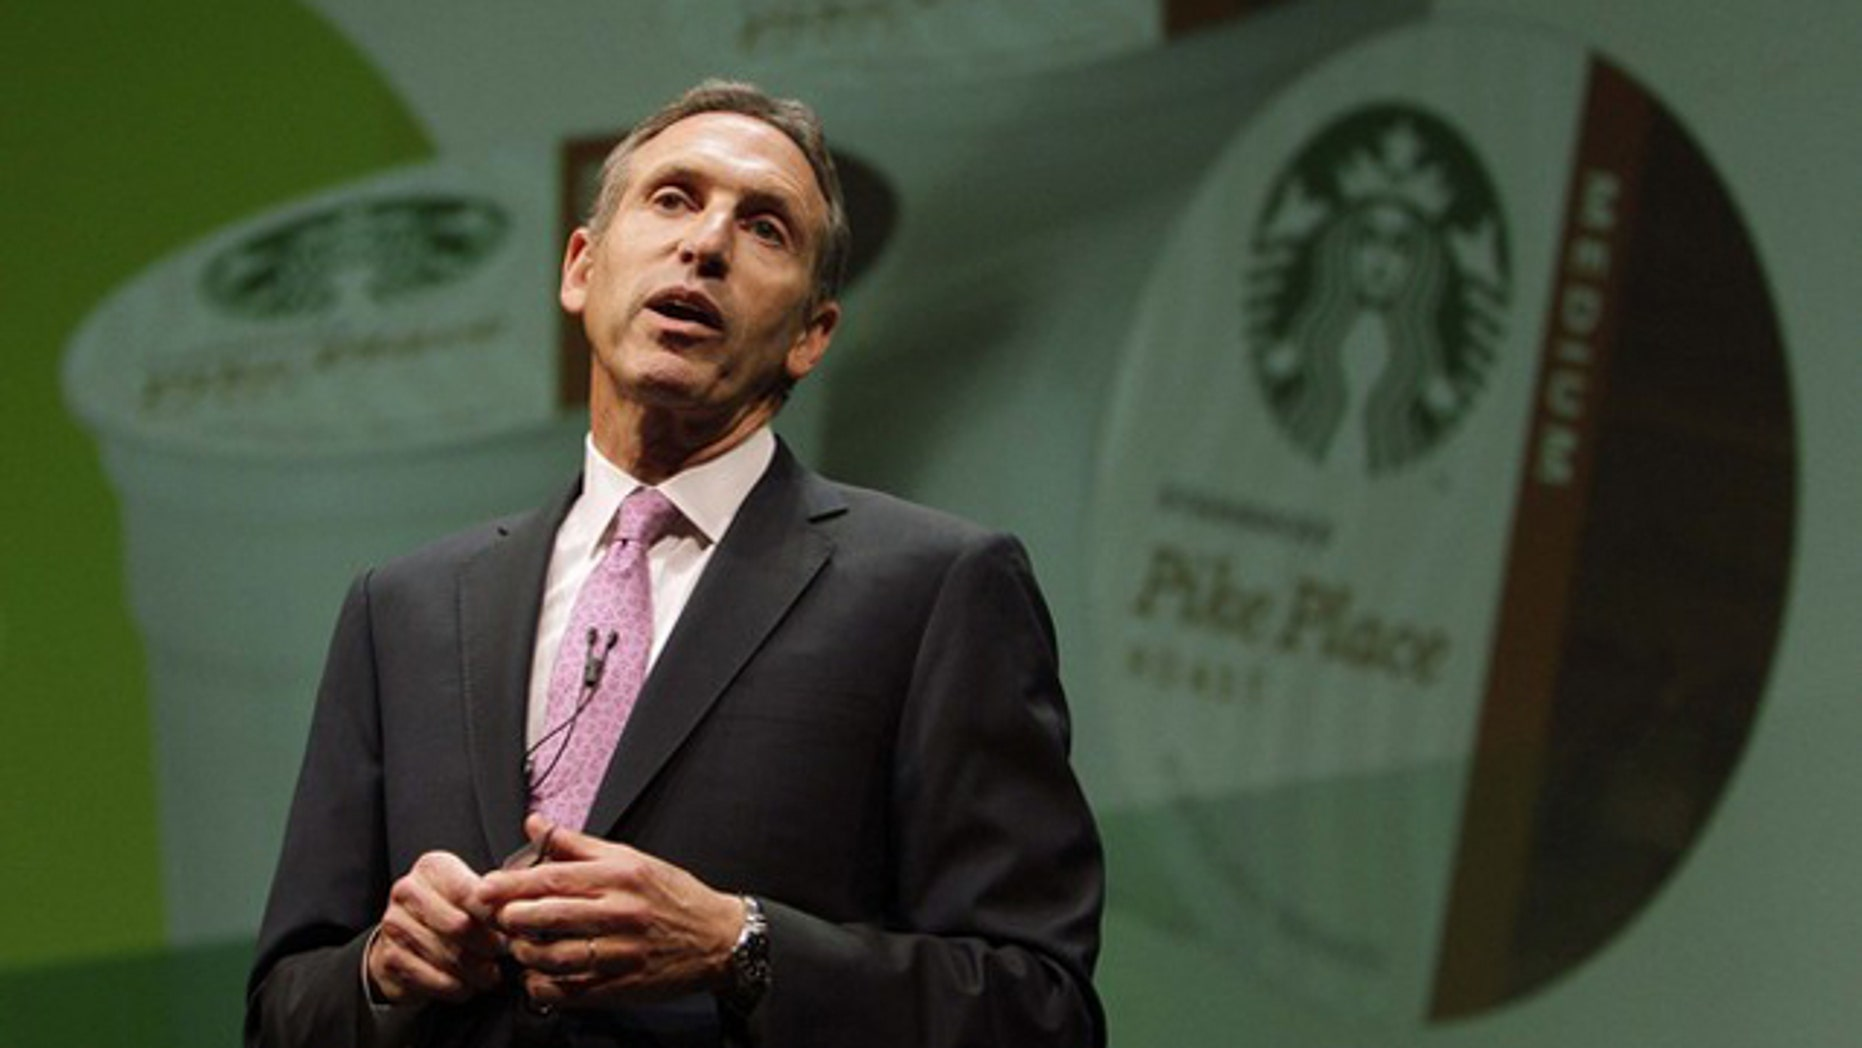 Starbucks CEO Howard Schultz speaks to shareholders at the company's annual meeting of shareholders in Seattle March 23.